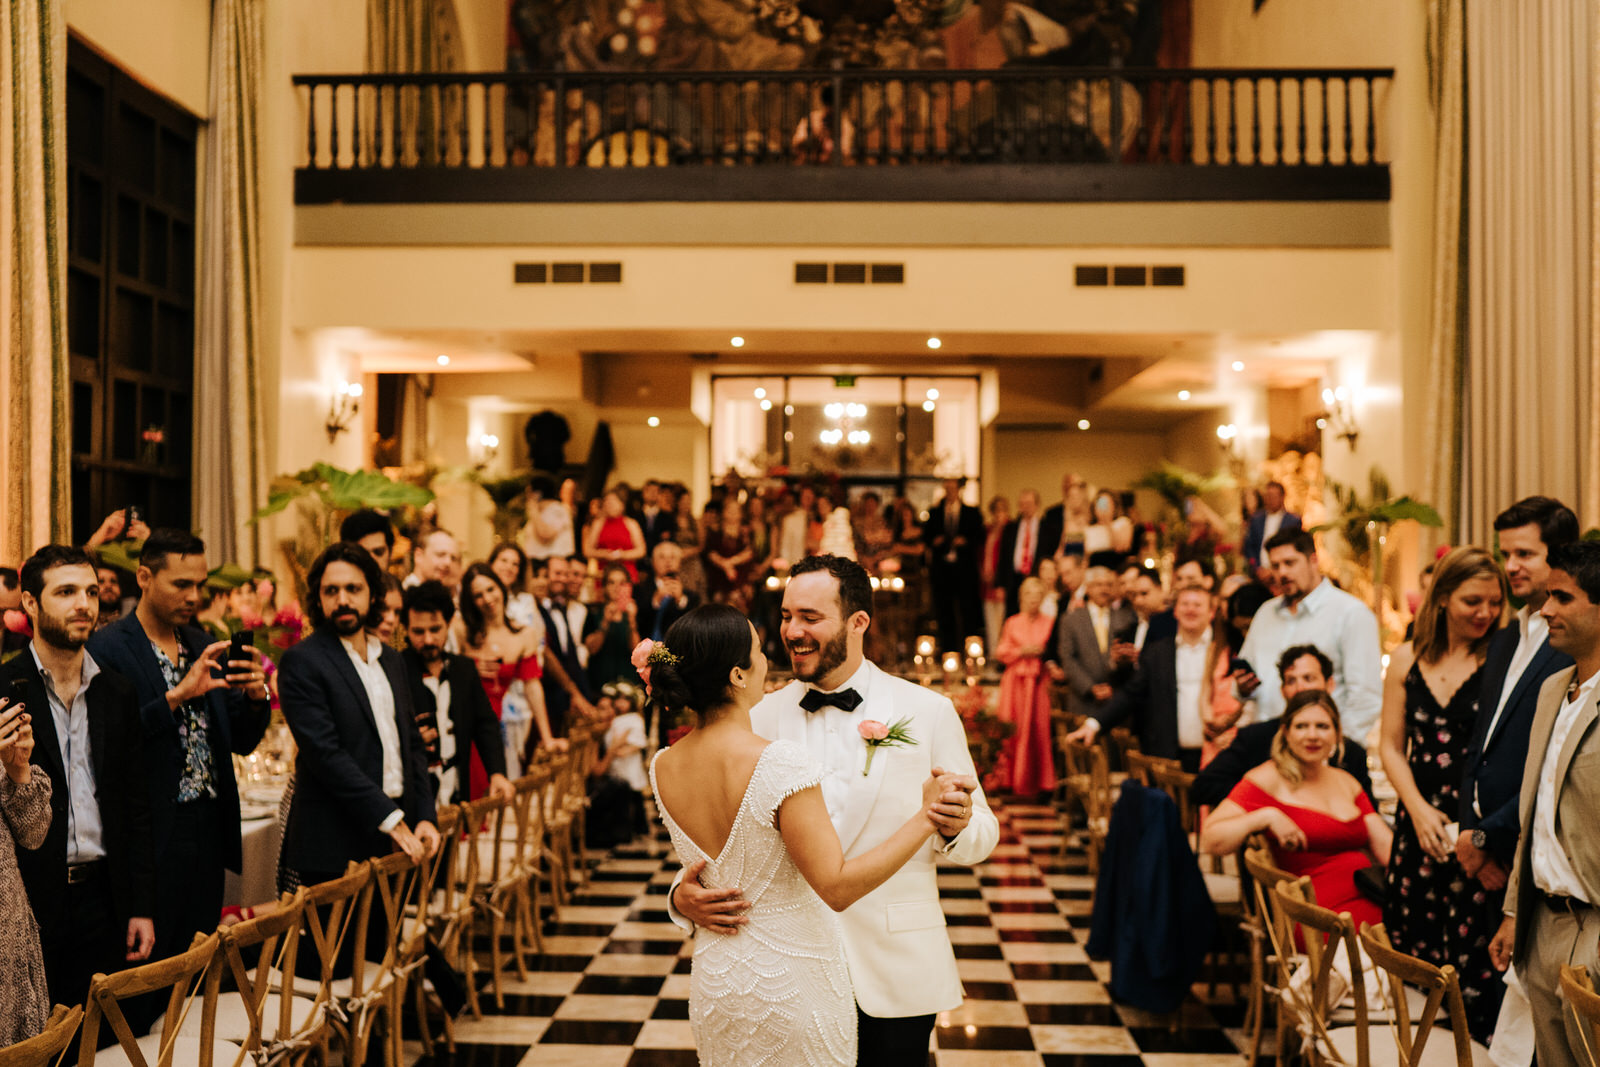 Wide photograph of bride and groom having their first dance. Bride's back is towards the camera while groom smiles at her.